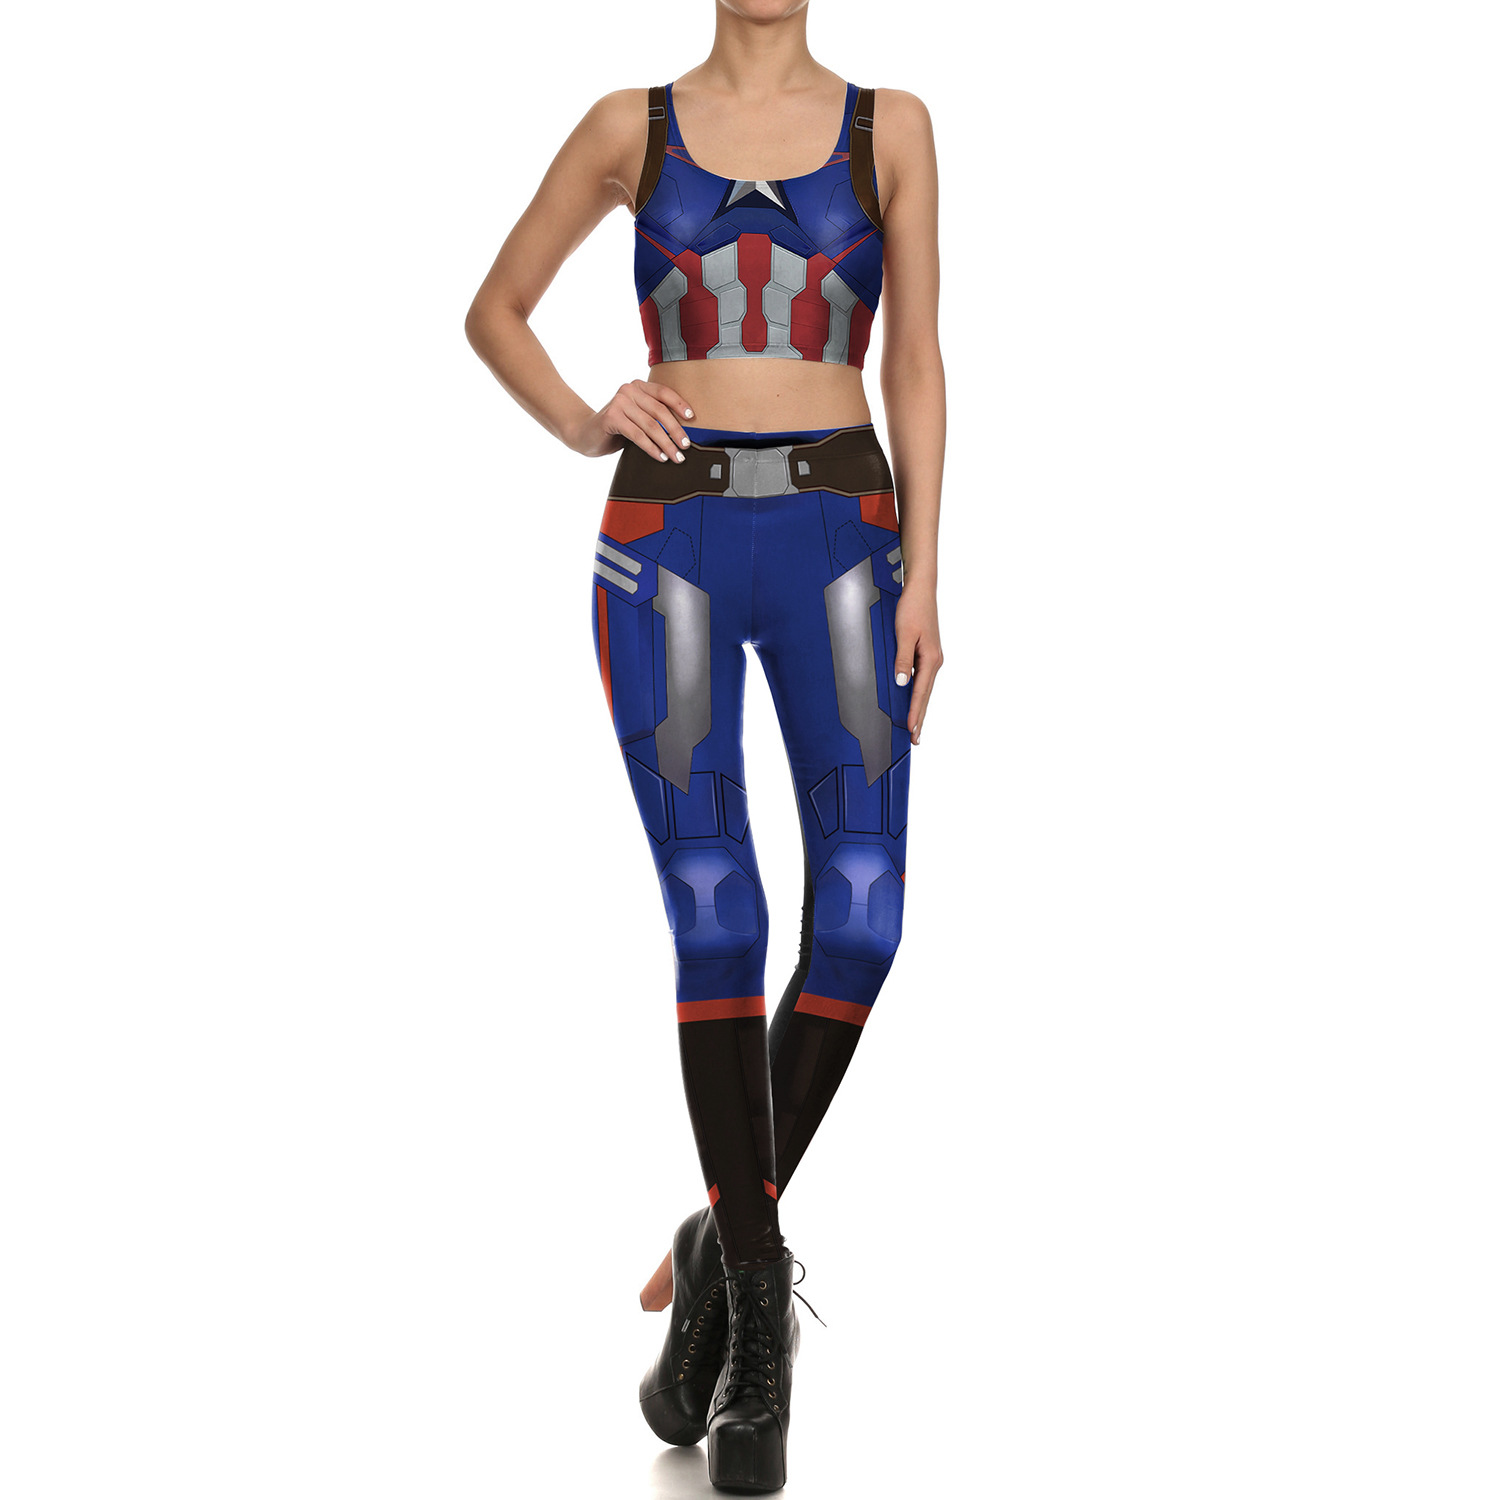 WOMEN'S Pants Hot Selling Game Anime Skinny Pants Character Play Vest Leggings Two-Piece Set